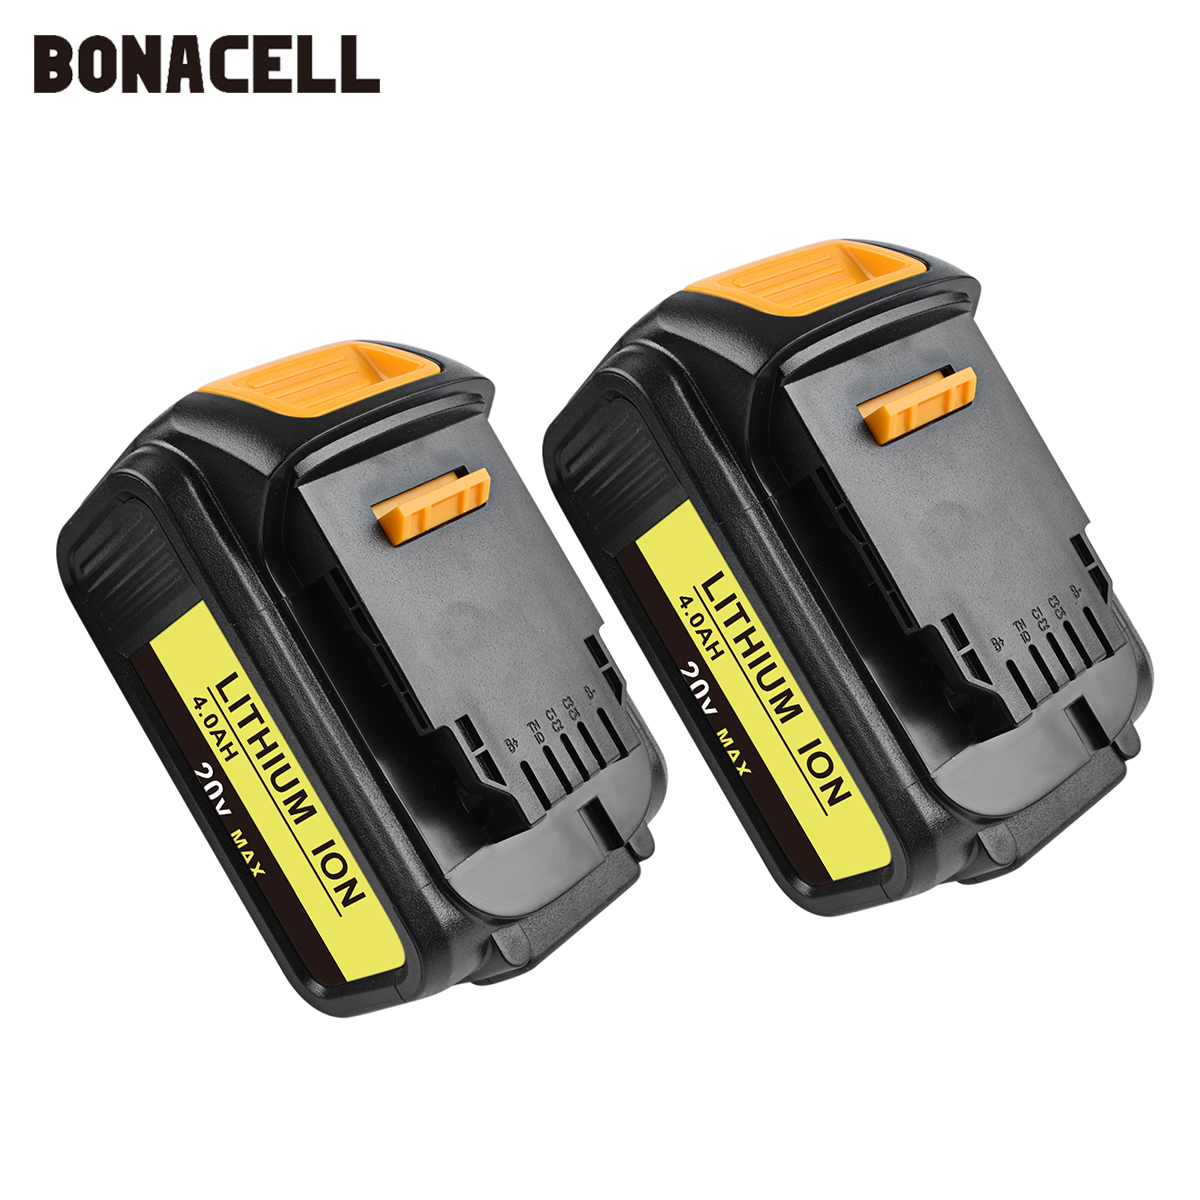 Bonacell 4000mAh Replacement Battery For Dewalt DCB200 20V MAX Lithium-Ion Battery DCB204 DCB101 DCF885 L10Bonacell 4000mAh Replacement Battery For Dewalt DCB200 20V MAX Lithium-Ion Battery DCB204 DCB101 DCF885 L10